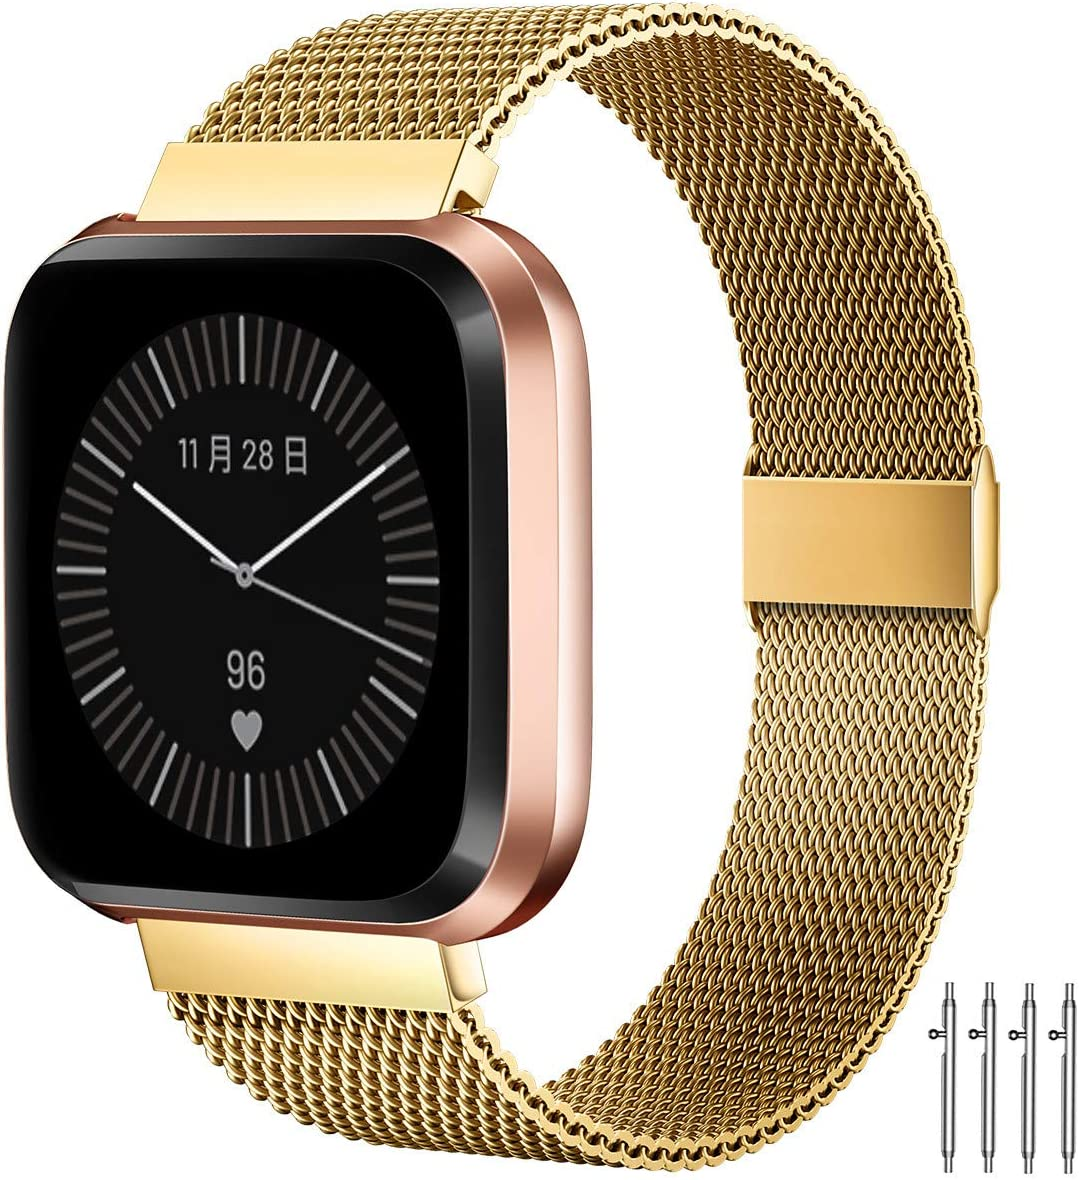 MioHHR Bands Compatible with Fitbit Versa/Fitbit Versa 2/Fitbit Versa Lite for Women Men, Breathable Stainless Steel Strap, Adjustable Replacement Wristband Accessories for Fitbit Versa -Gold